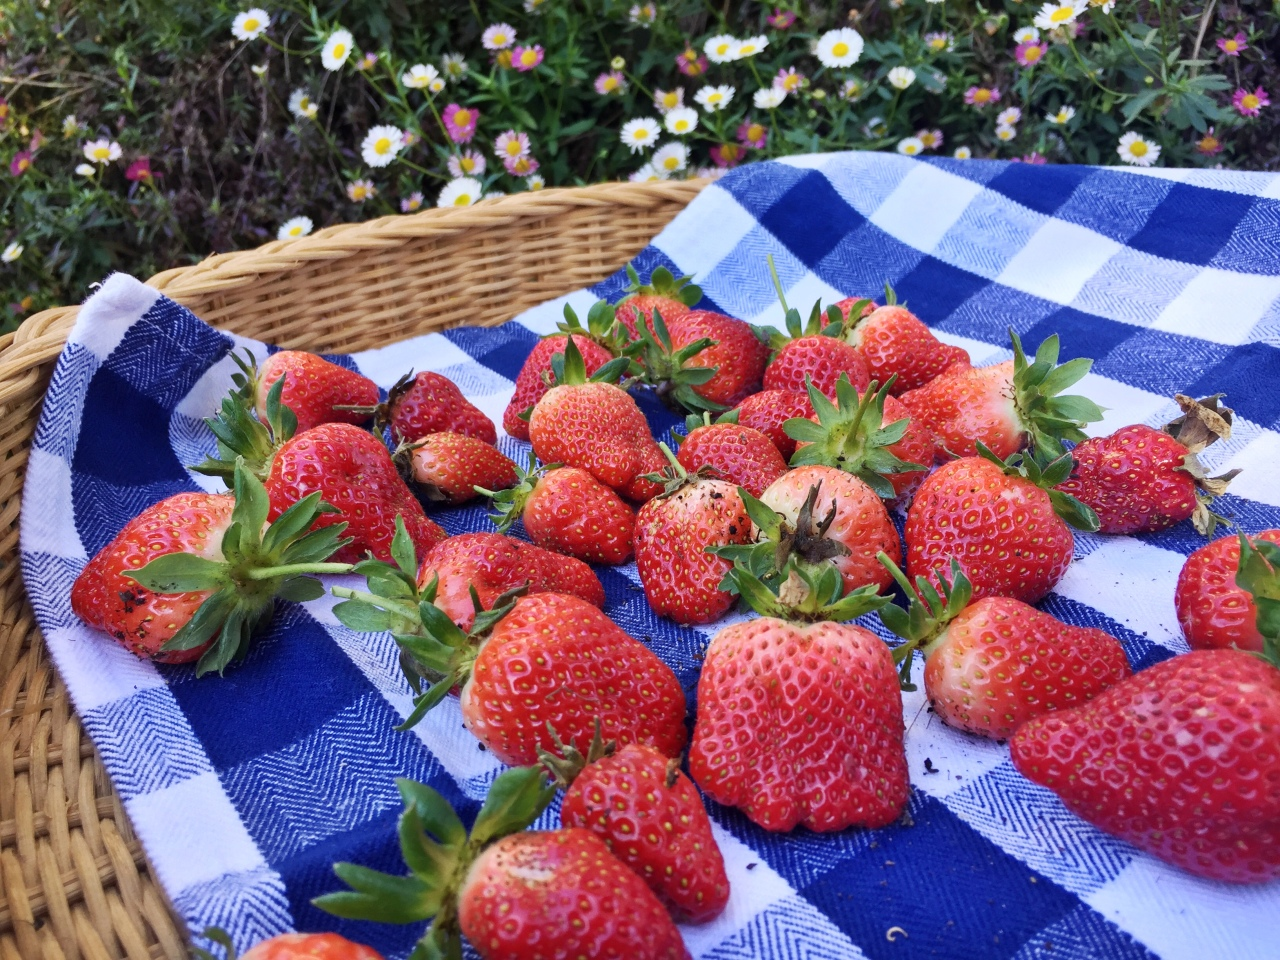 It's Strawberry Season